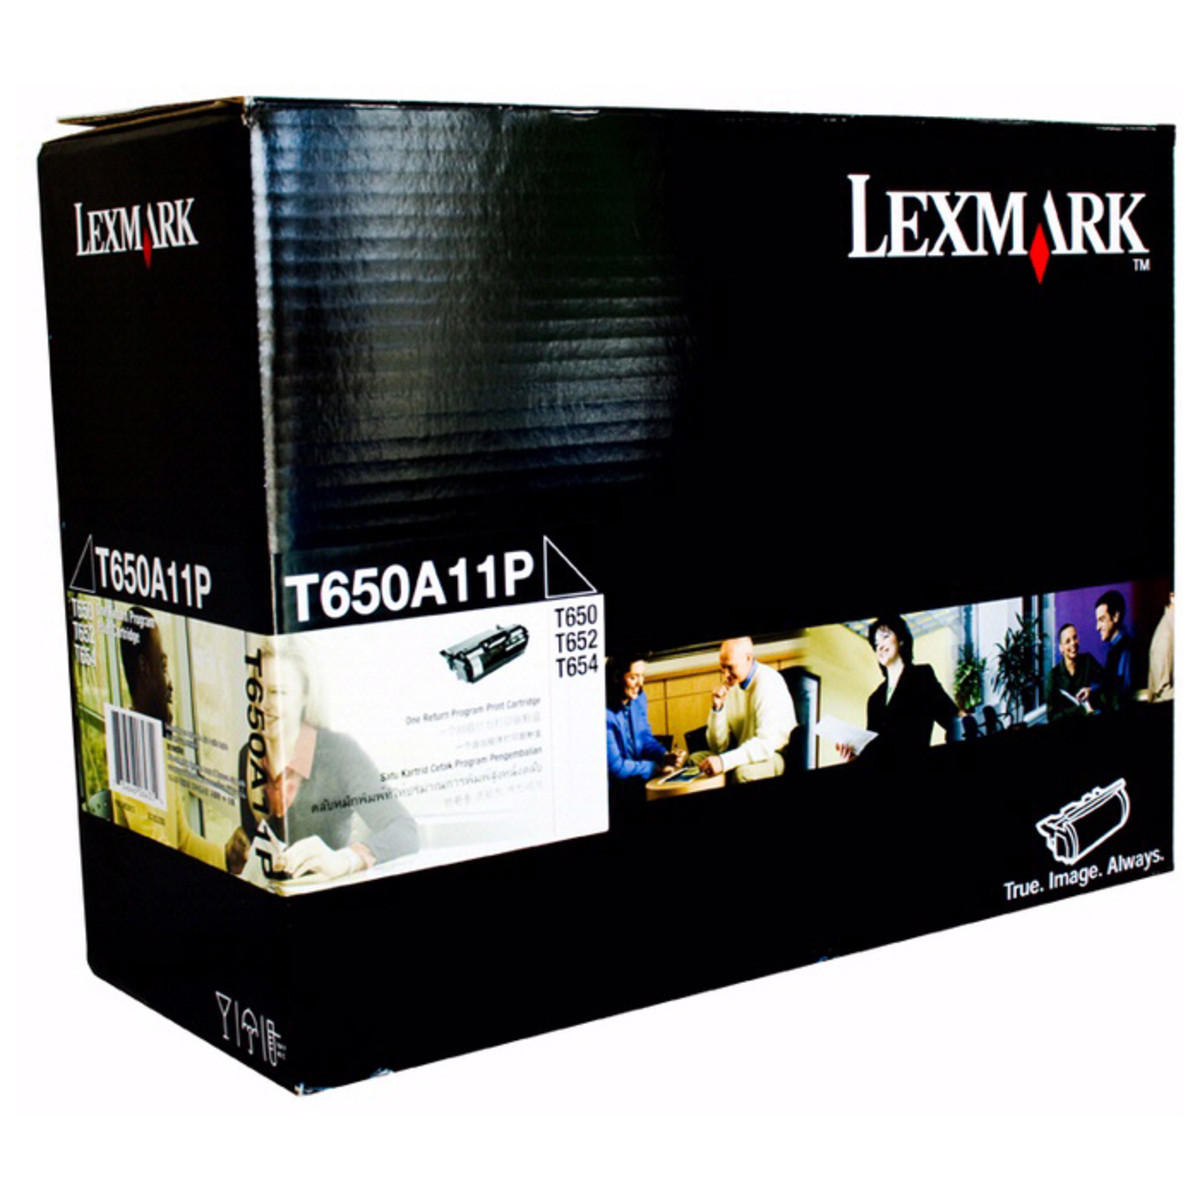 Lexmark TT650A11P Black Prebate Toner Cartridge